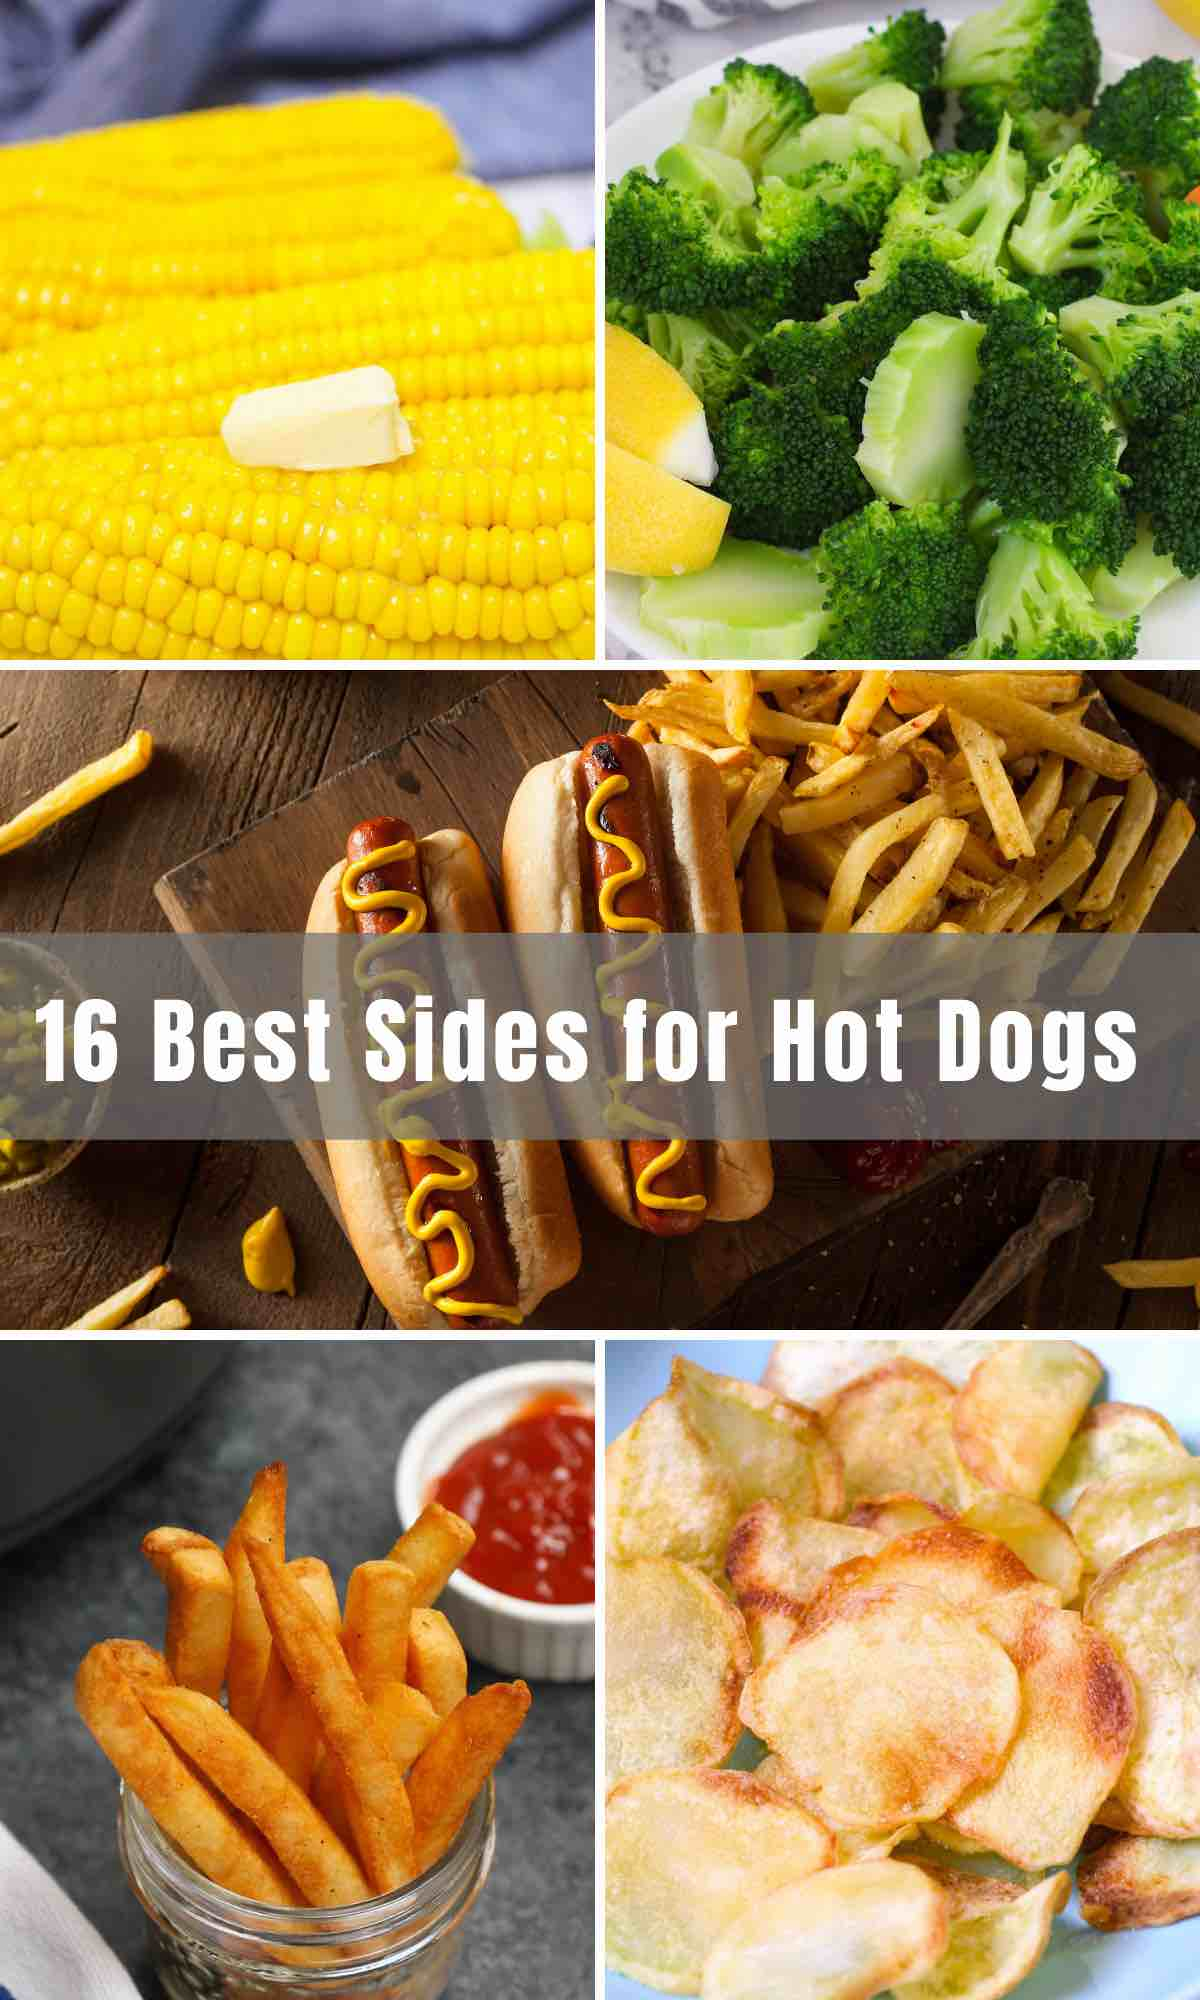 We've collected 16 Best Sides for Hot Dogs and buns for your summer cookout, potluck, or simply BBQ grill in your own backyard. These easy side dishes are our favorites, and go well with burgers and hot dogs!